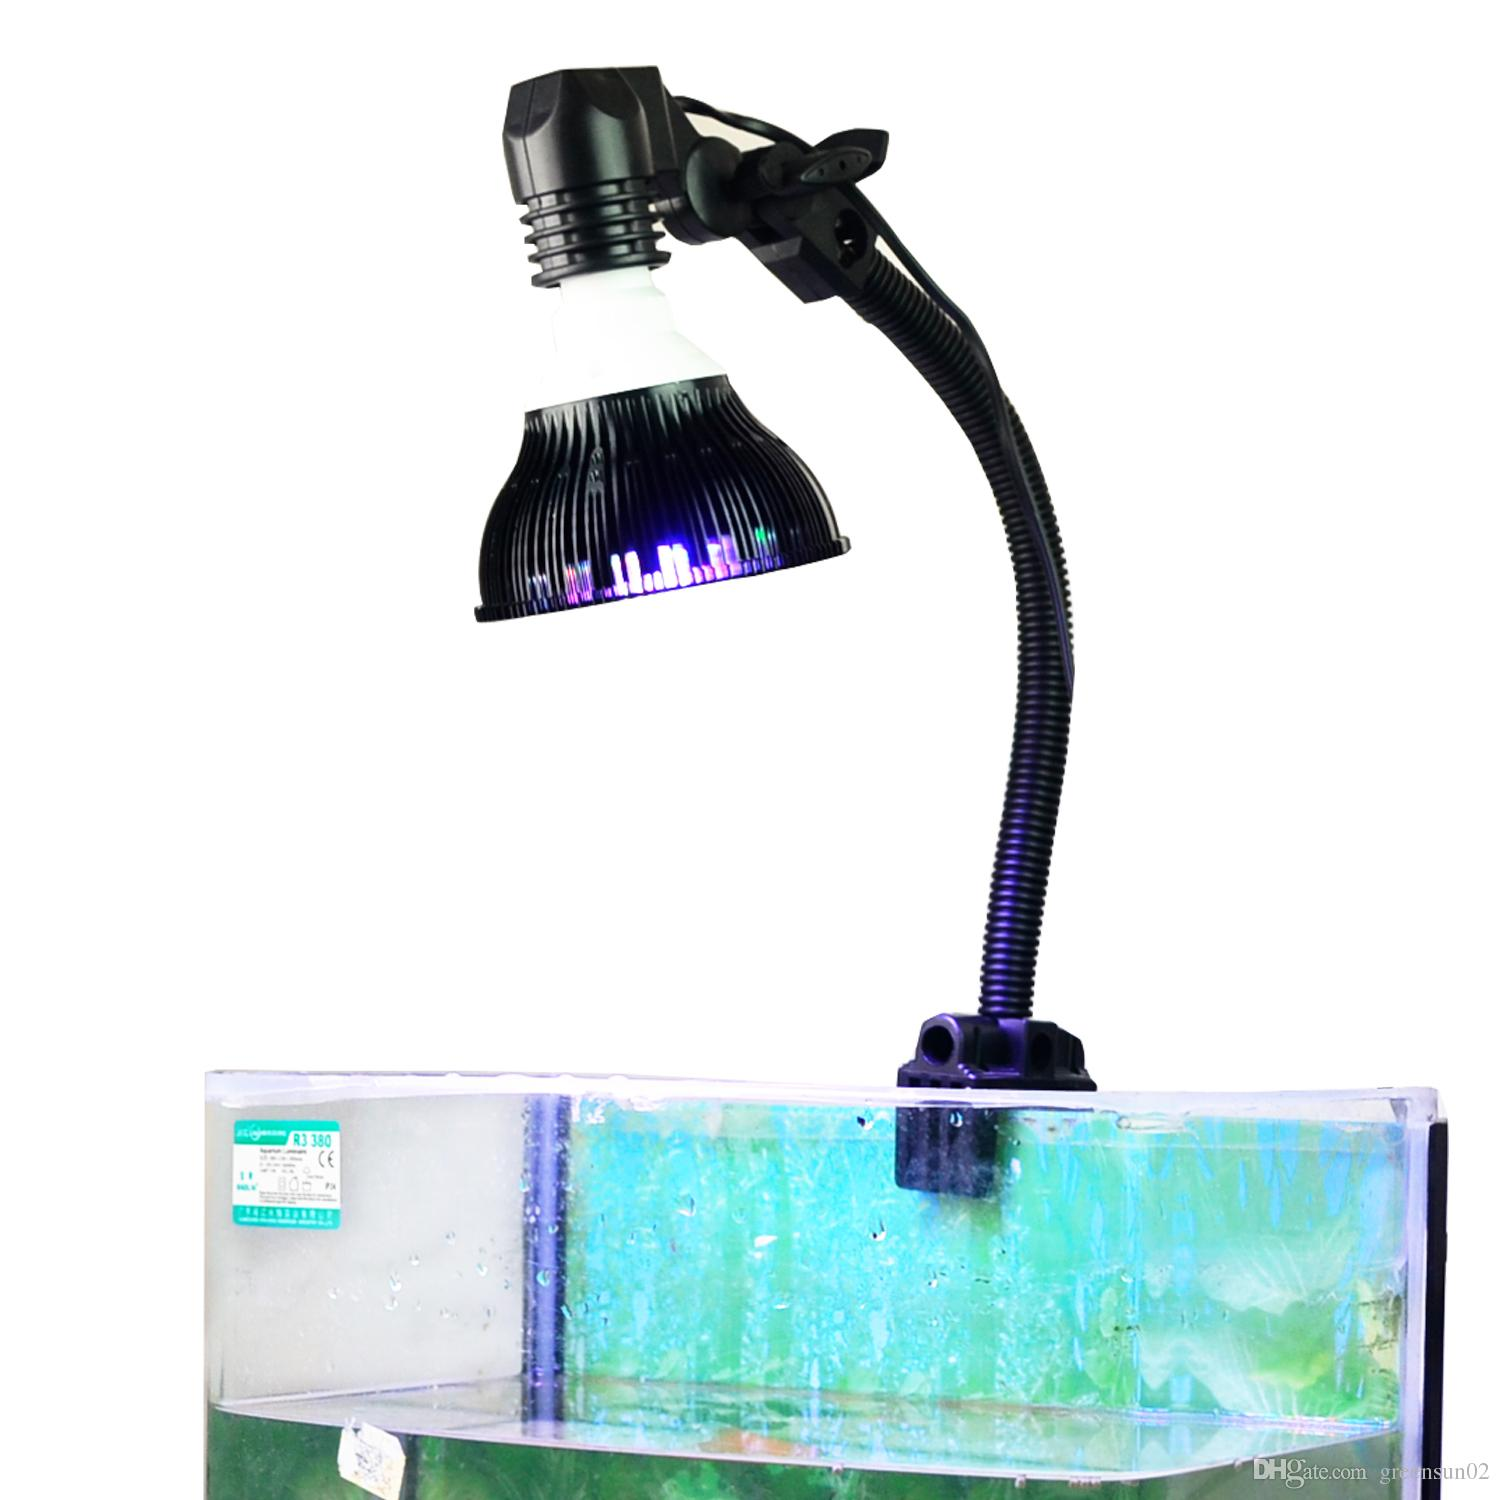 Nano led aquarium fish tank lighting - 2017 12 Led Reef Light Par38 Small Nano Tank Light With Gooseneck Clamp 12w E27 Base Full Spectrum Colors From Greensun02 57 17 Dhgate Com